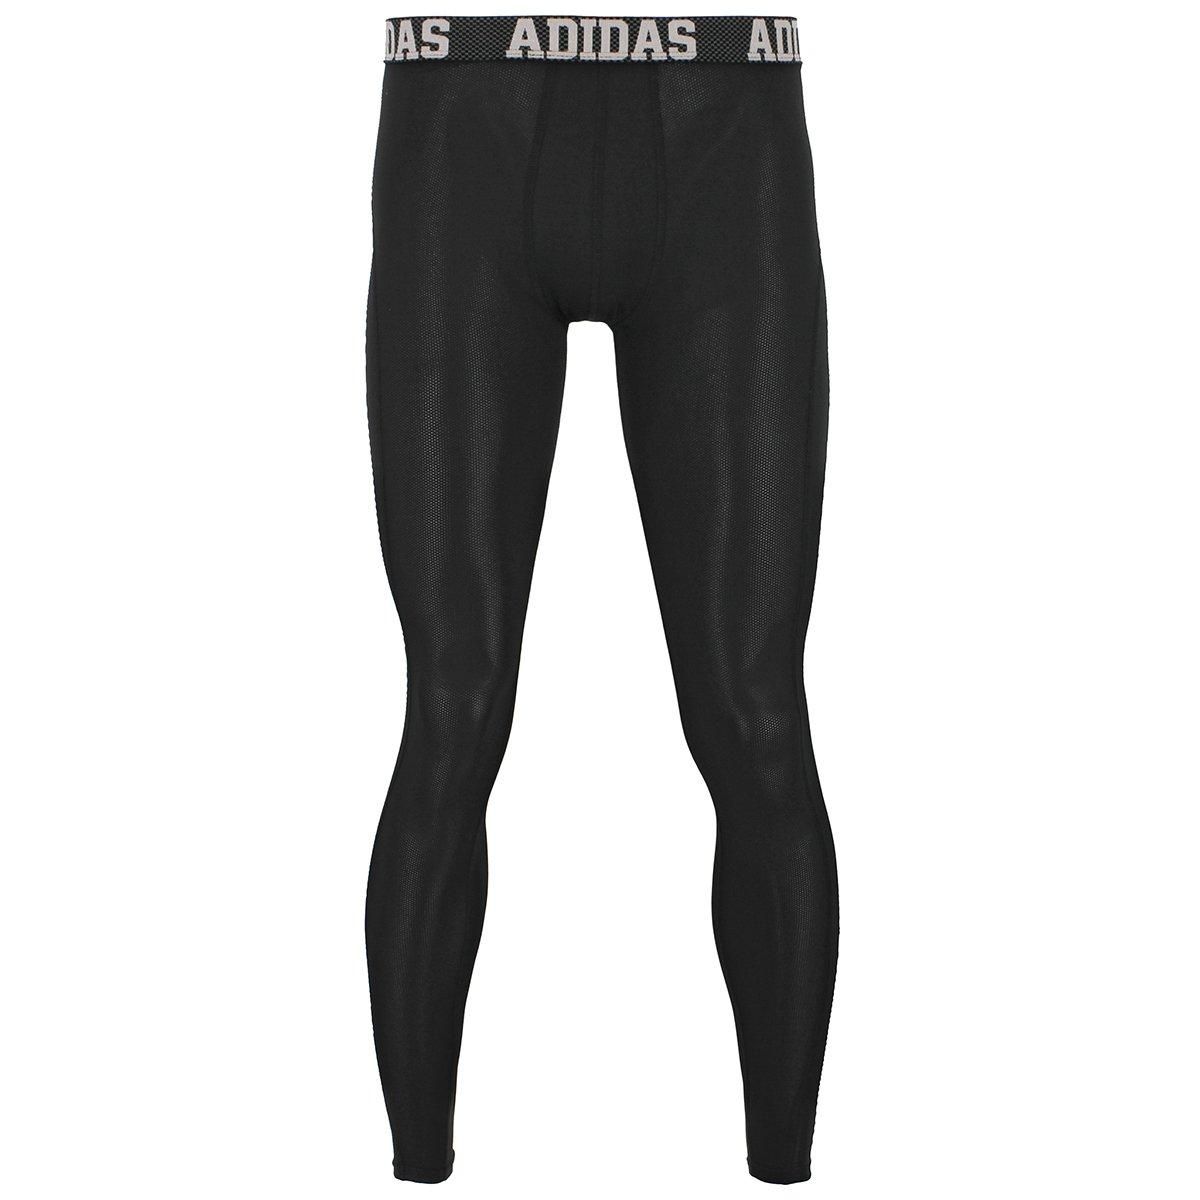 3. Adidas Men's Baselayer Climacool UPF Pants